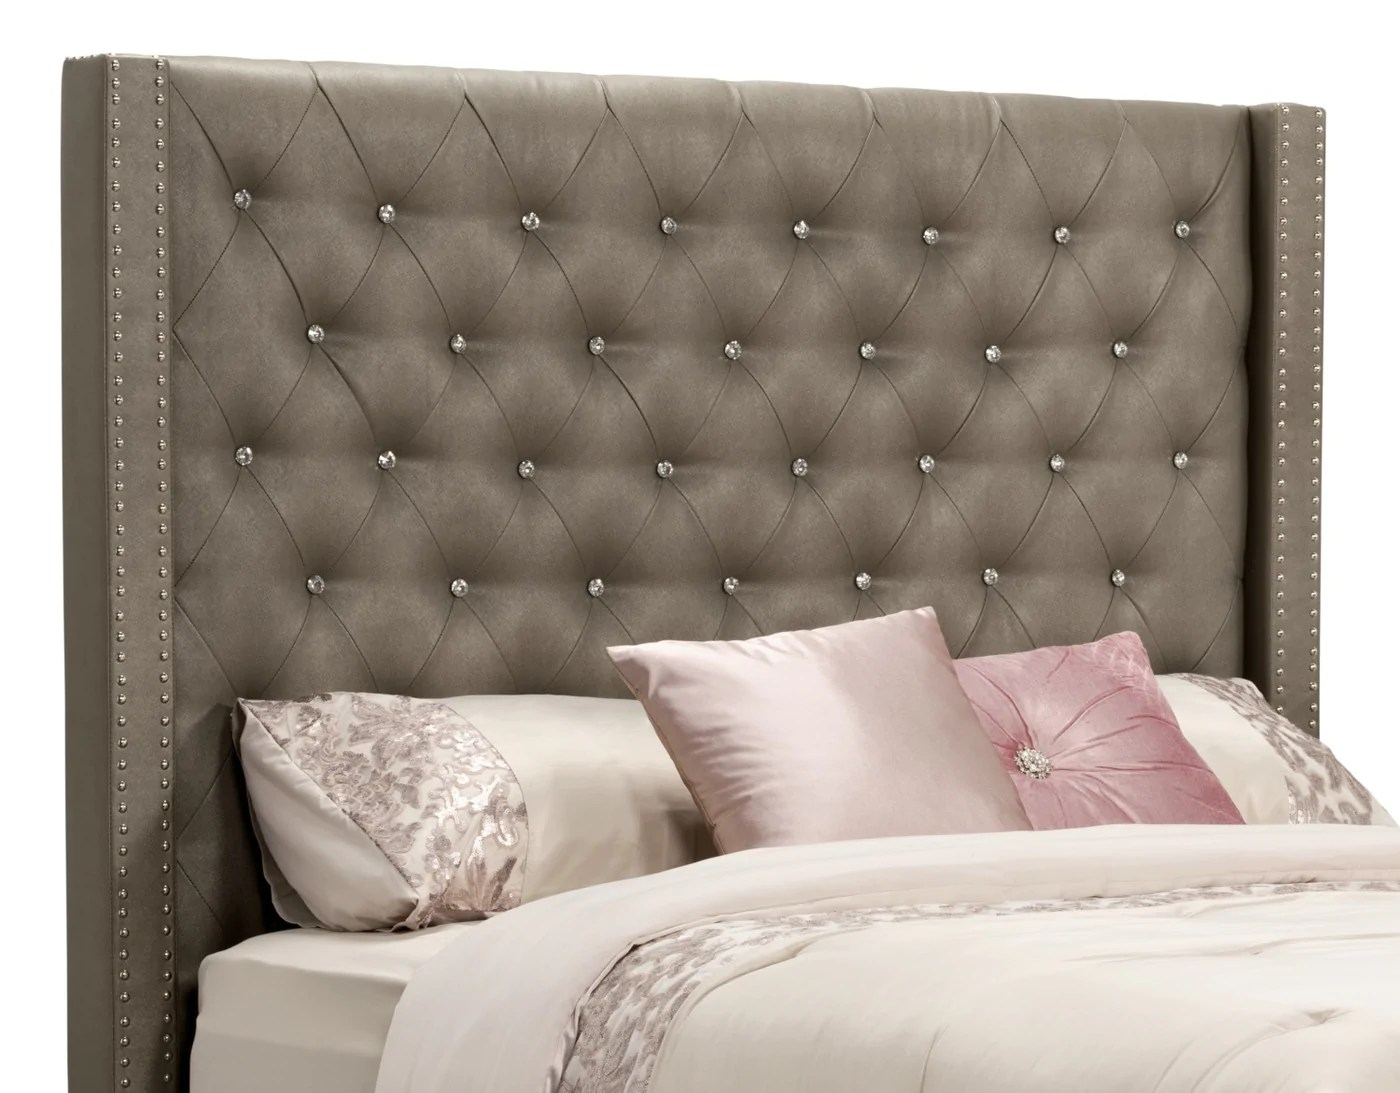 Diva Faux Leather Queen Headboard The Brick